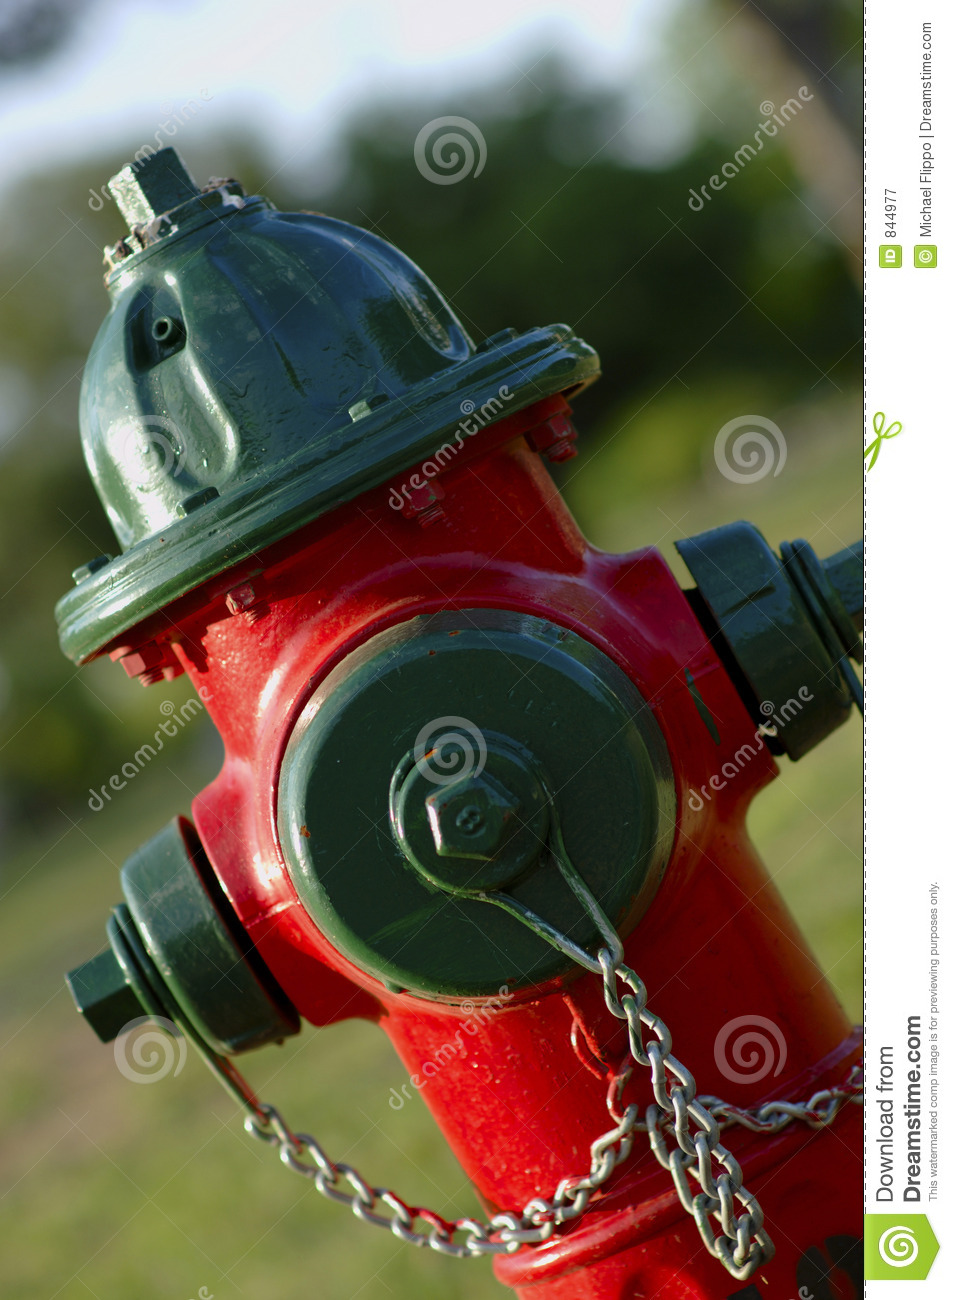 Fire Hydrant - Red and Green